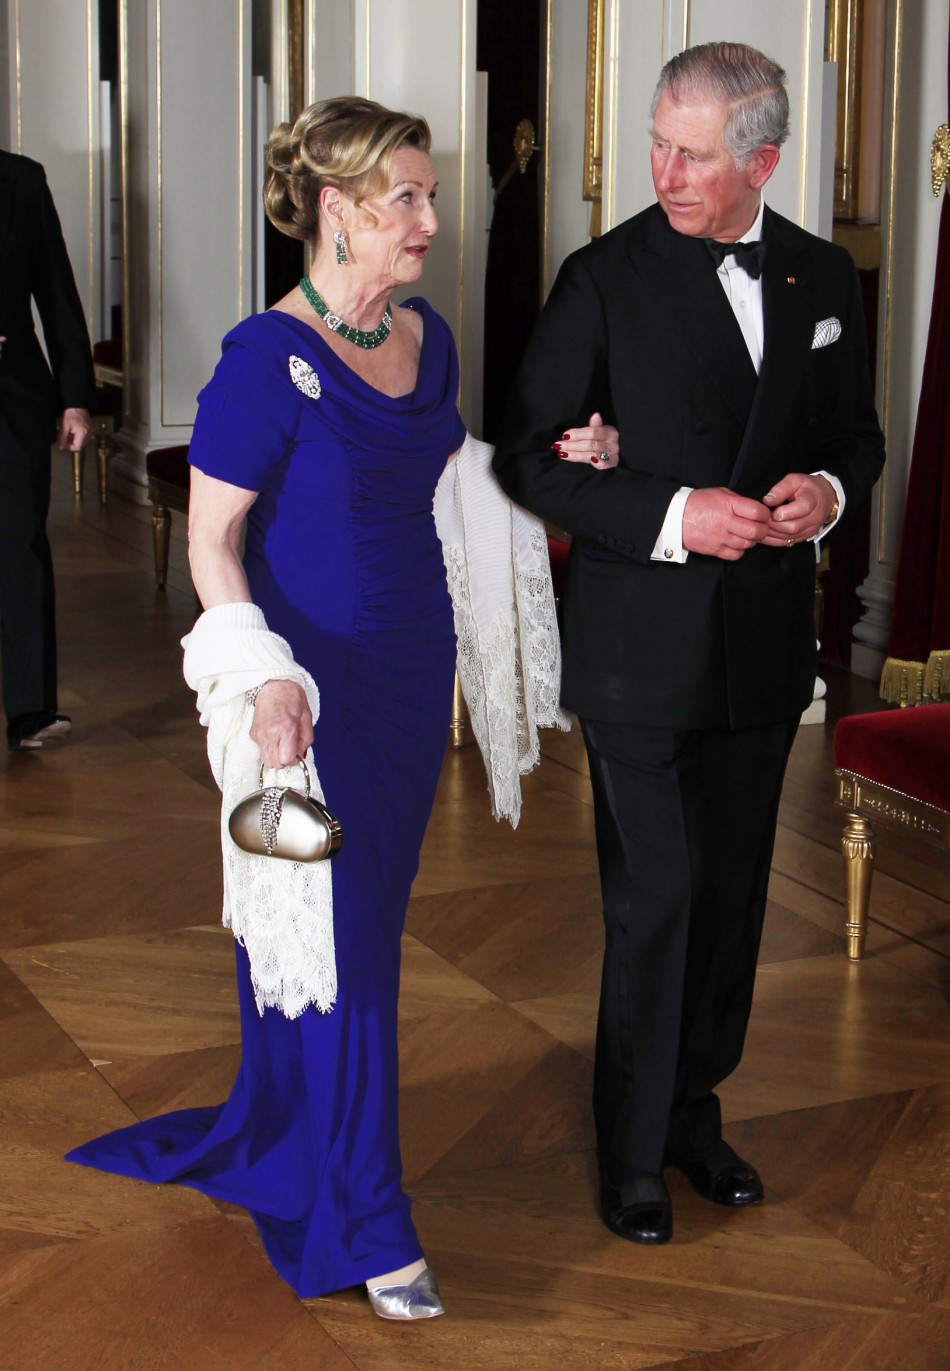 Prince Charles and Camilla Attends State Dinner During Diamond Jubilee Tour